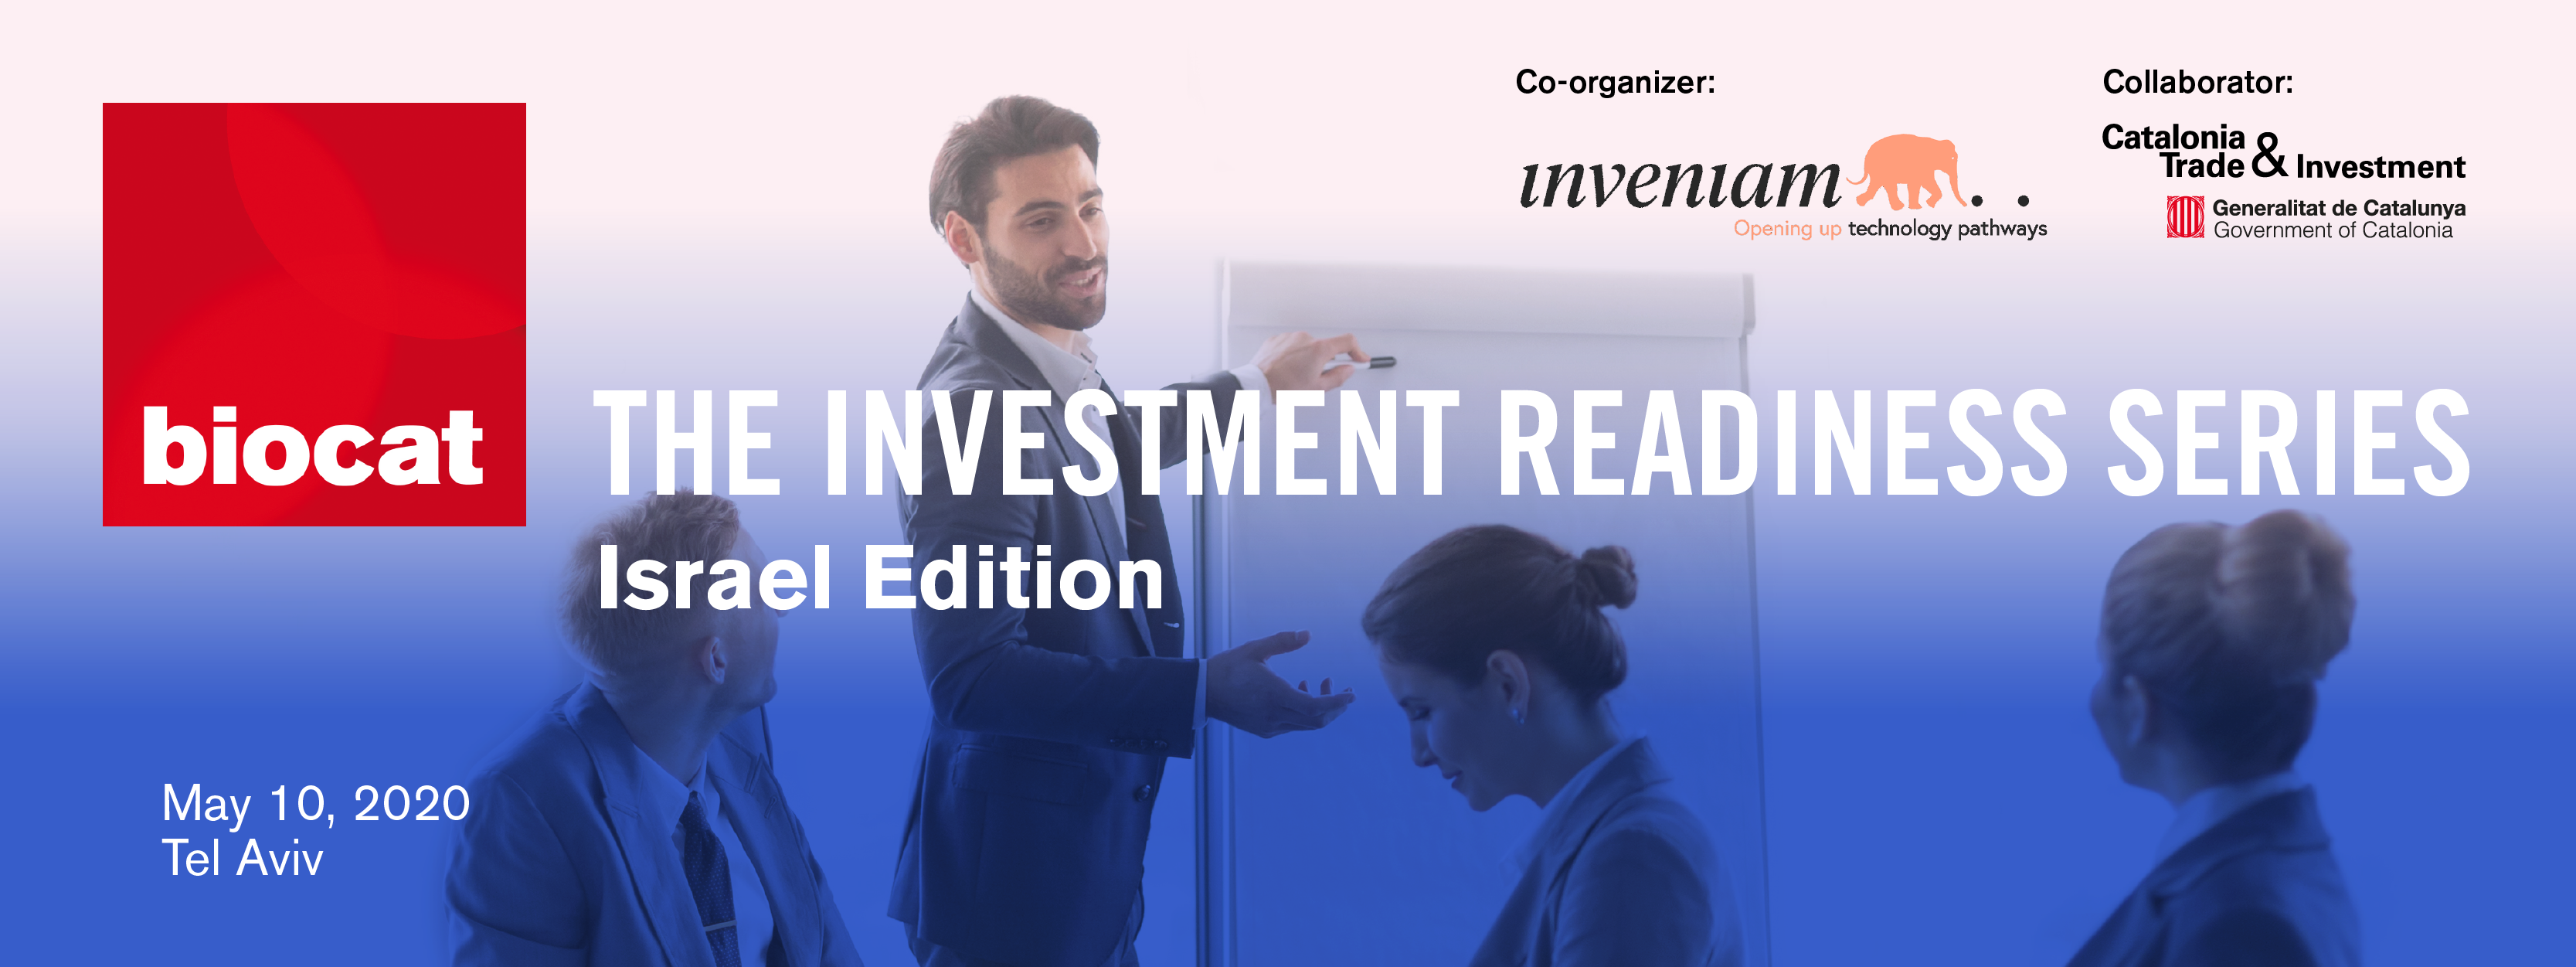 The Investment Readiness Series - Israel Edition